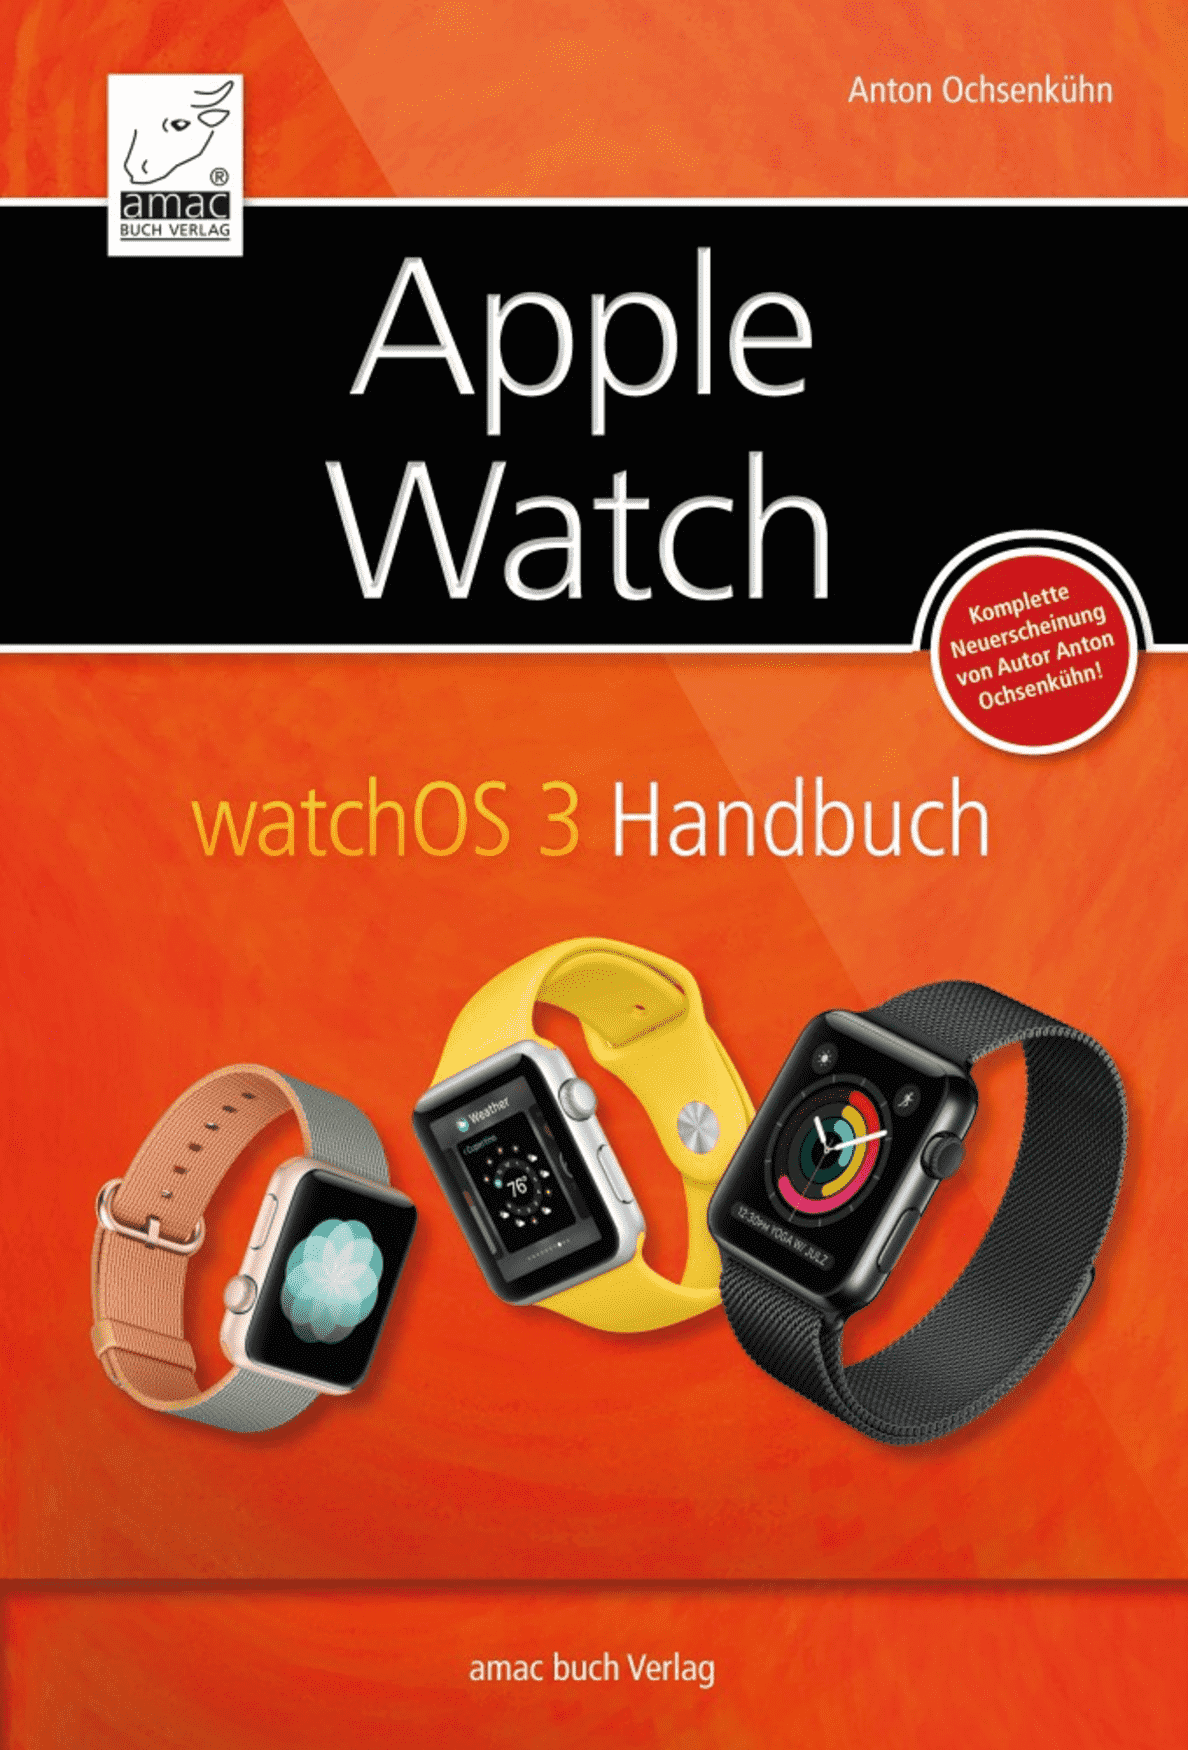 Apple Watch – watchOS 3 Handbuch